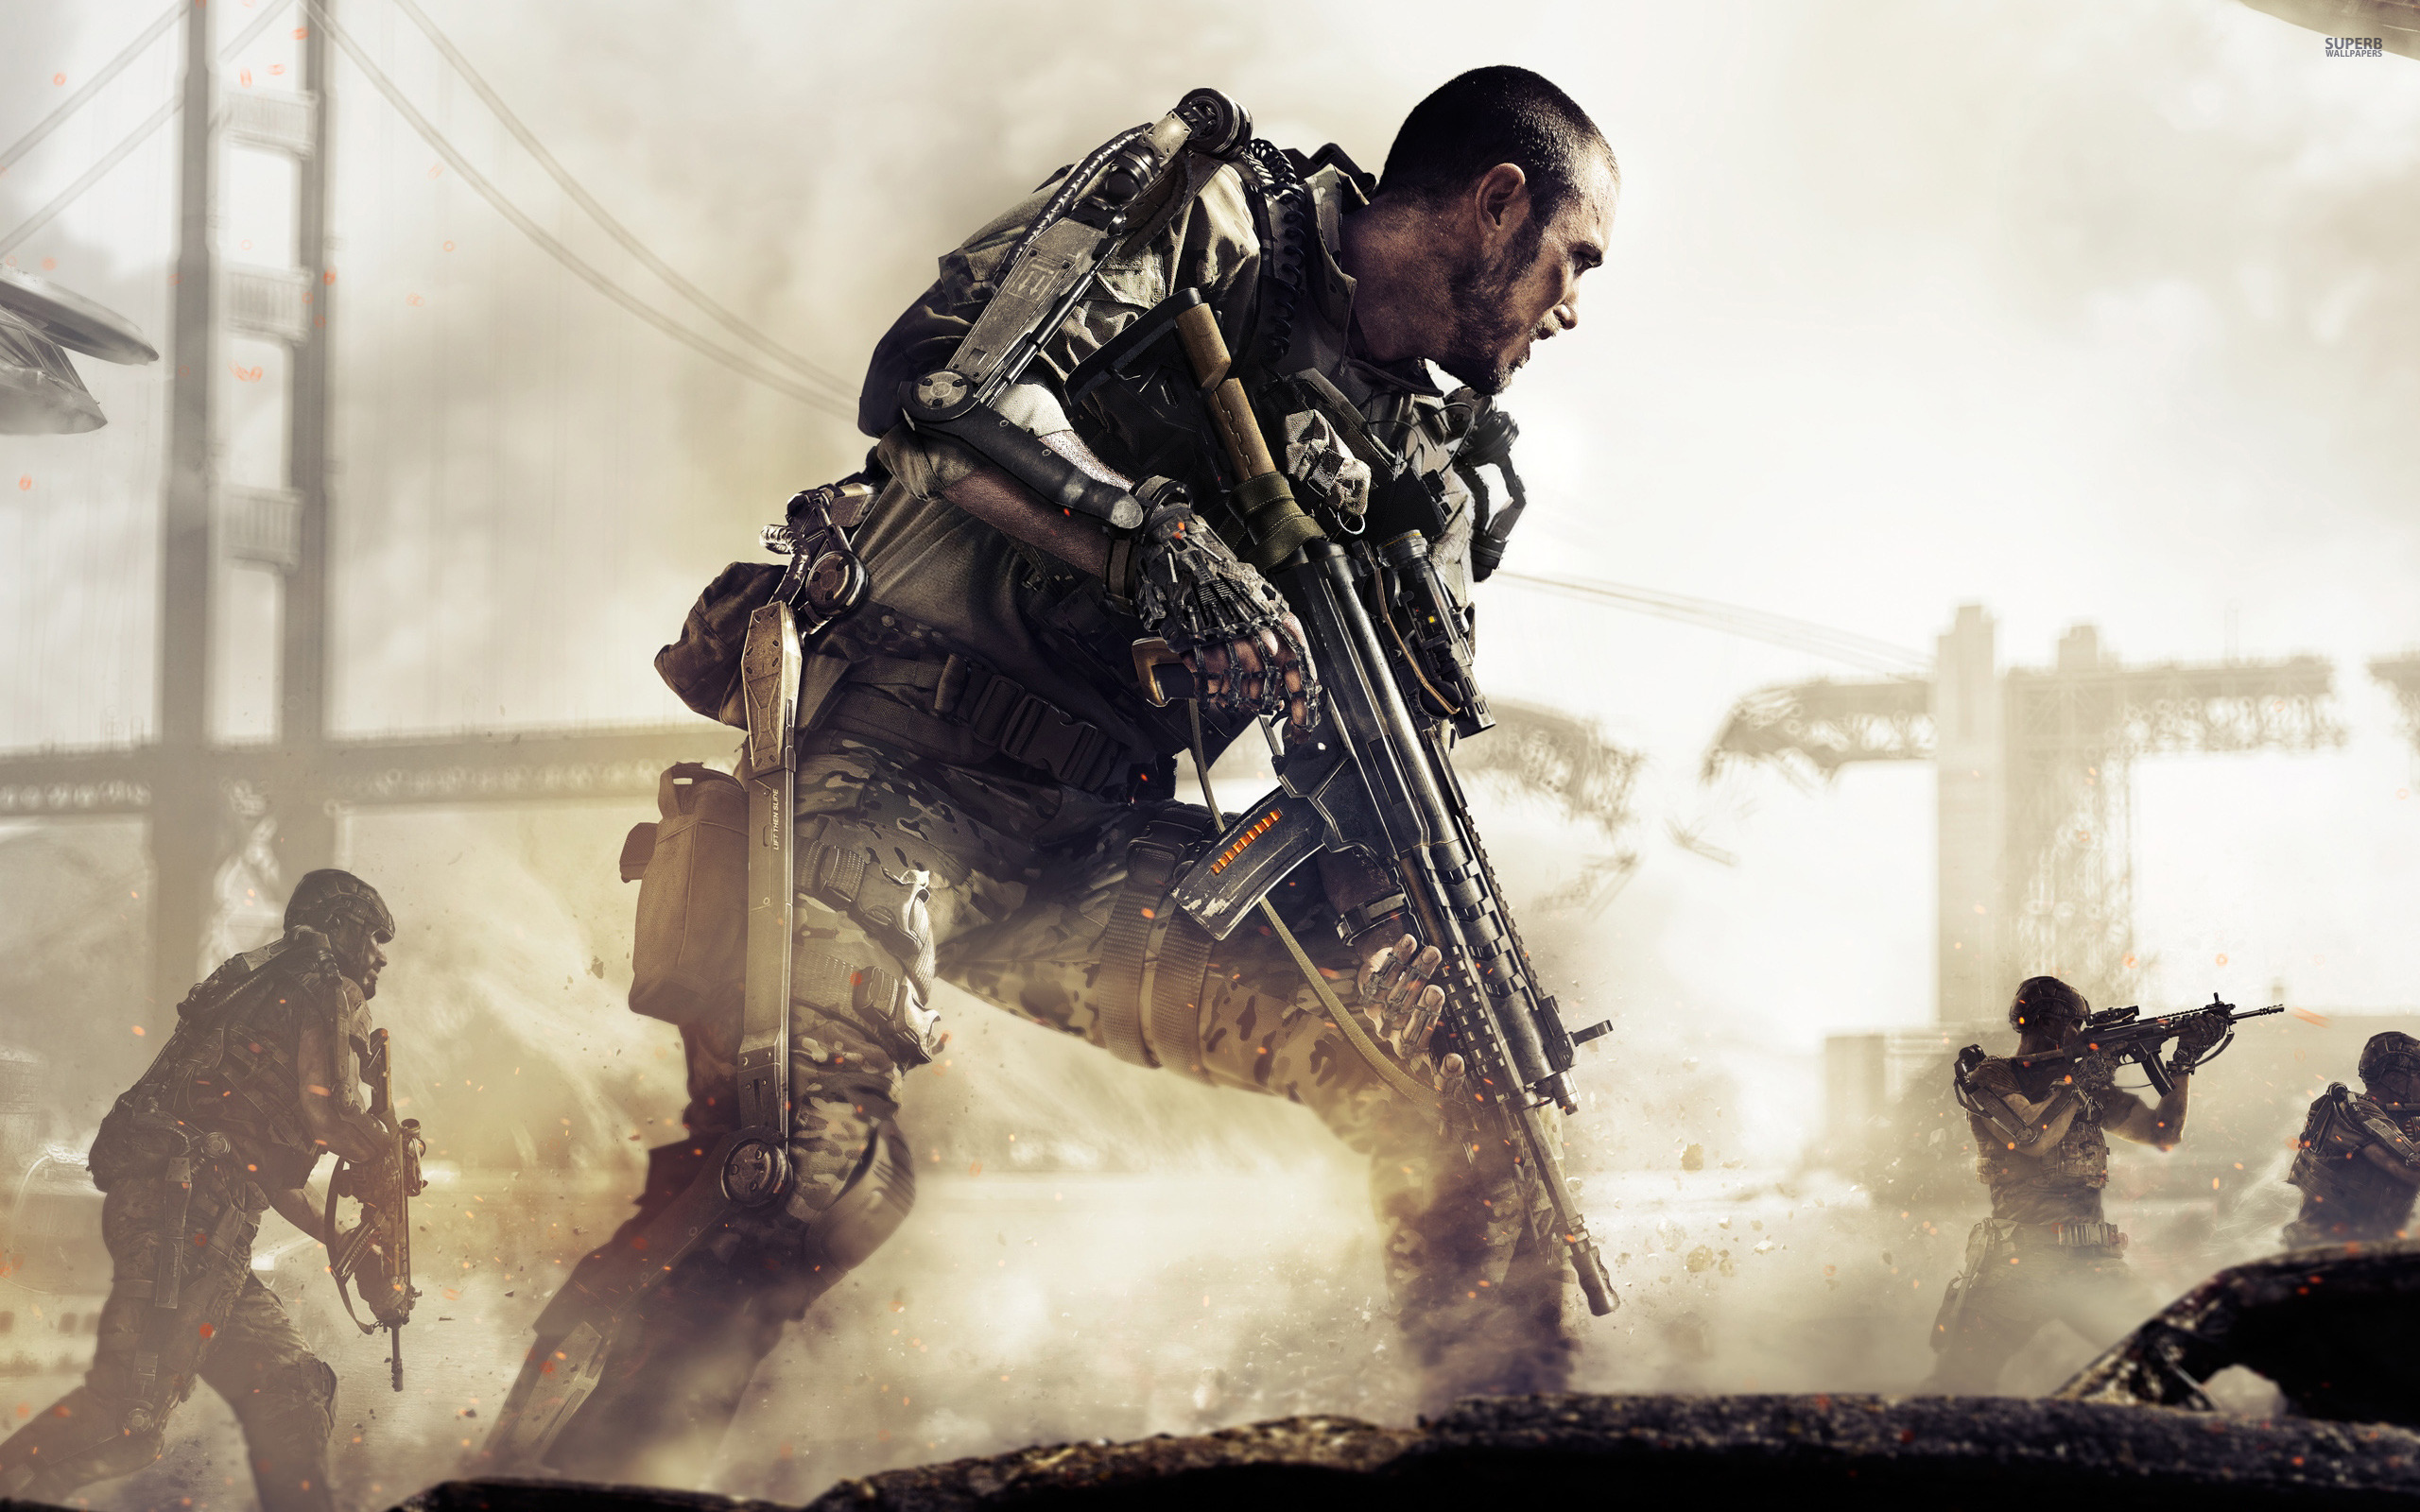 Call of Duty: Advanced Warfare wallpaper 2560x1600 jpg